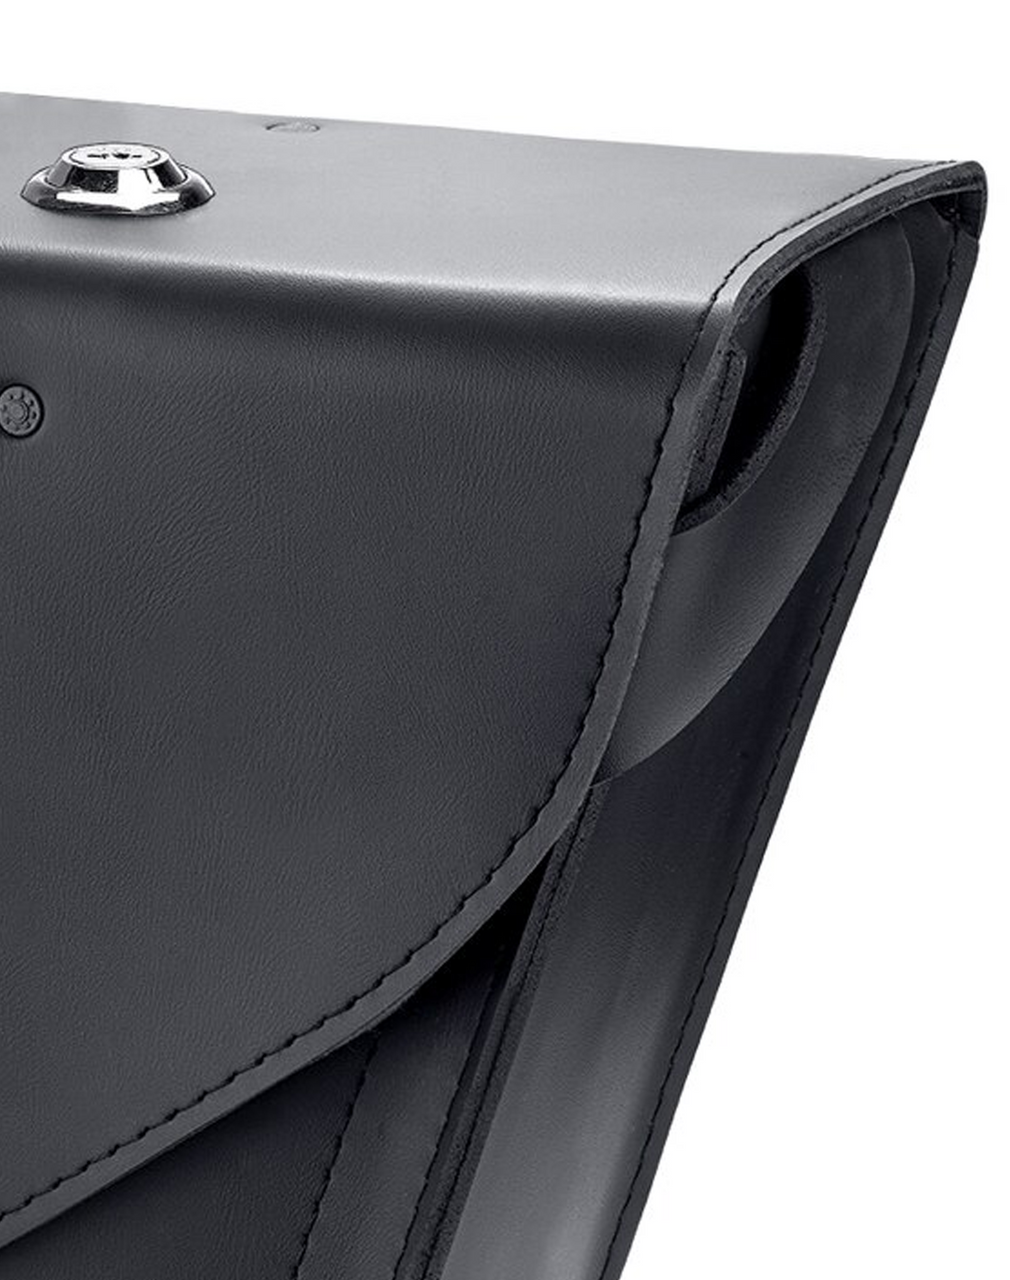 Viking Dark Age Compact Plain Leather Motorcycle Saddlebags For Sportster 883 Iron XL883N Close up view